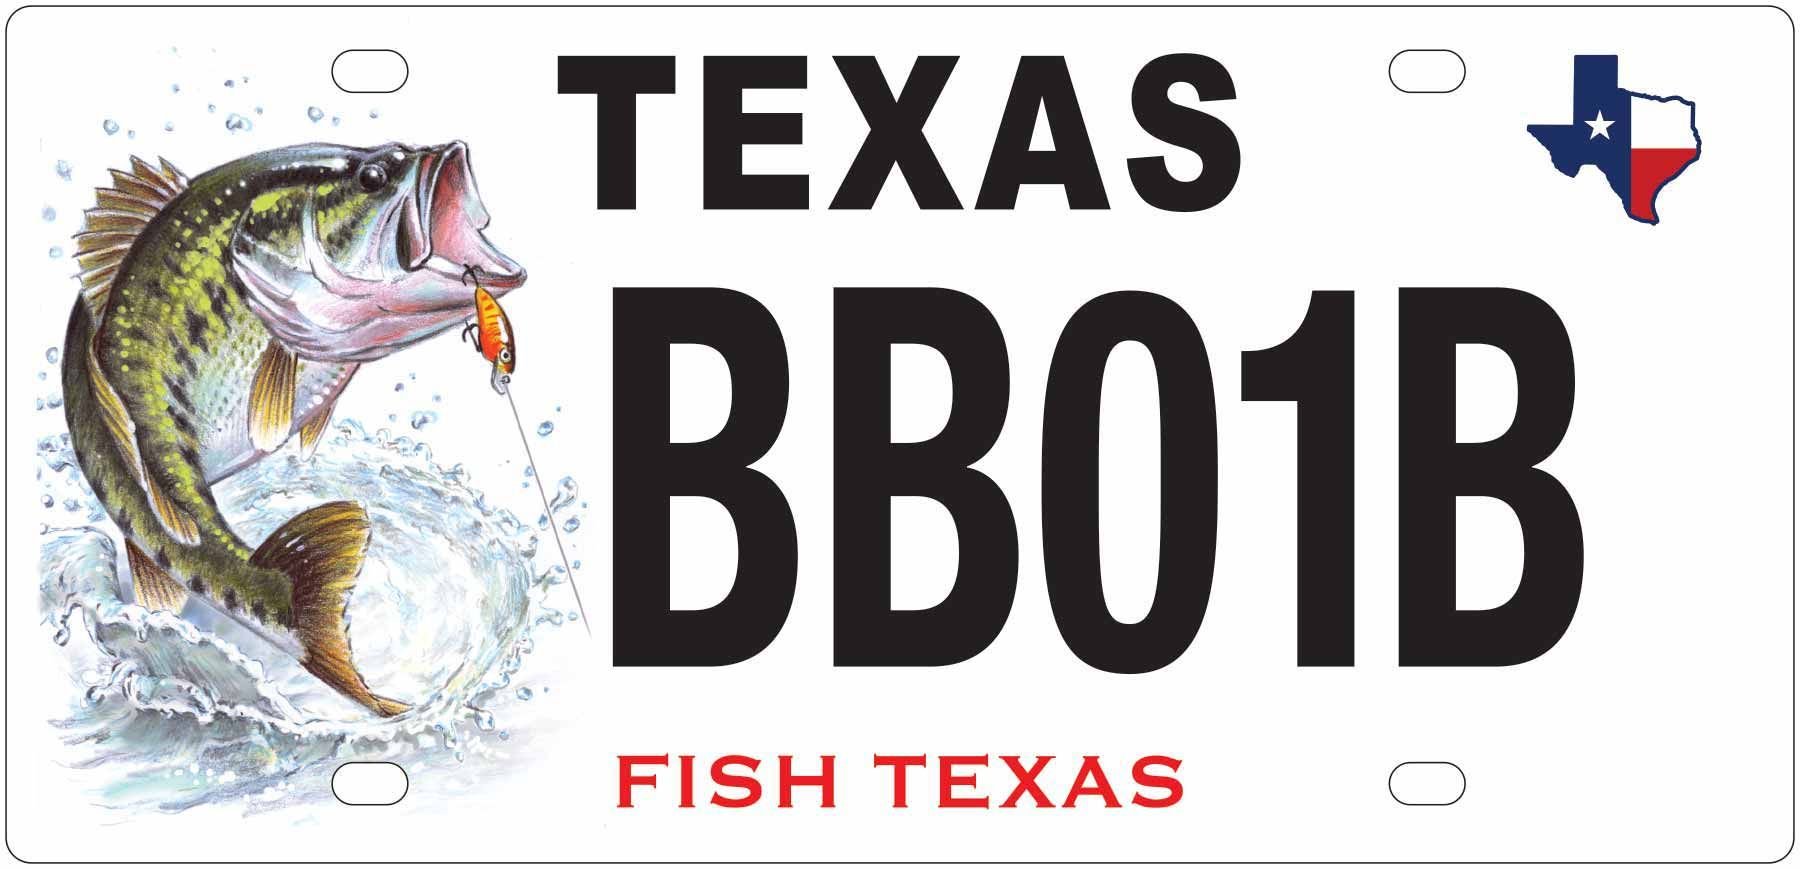 New Texas Largemouth Bass License Plate With Images Fish